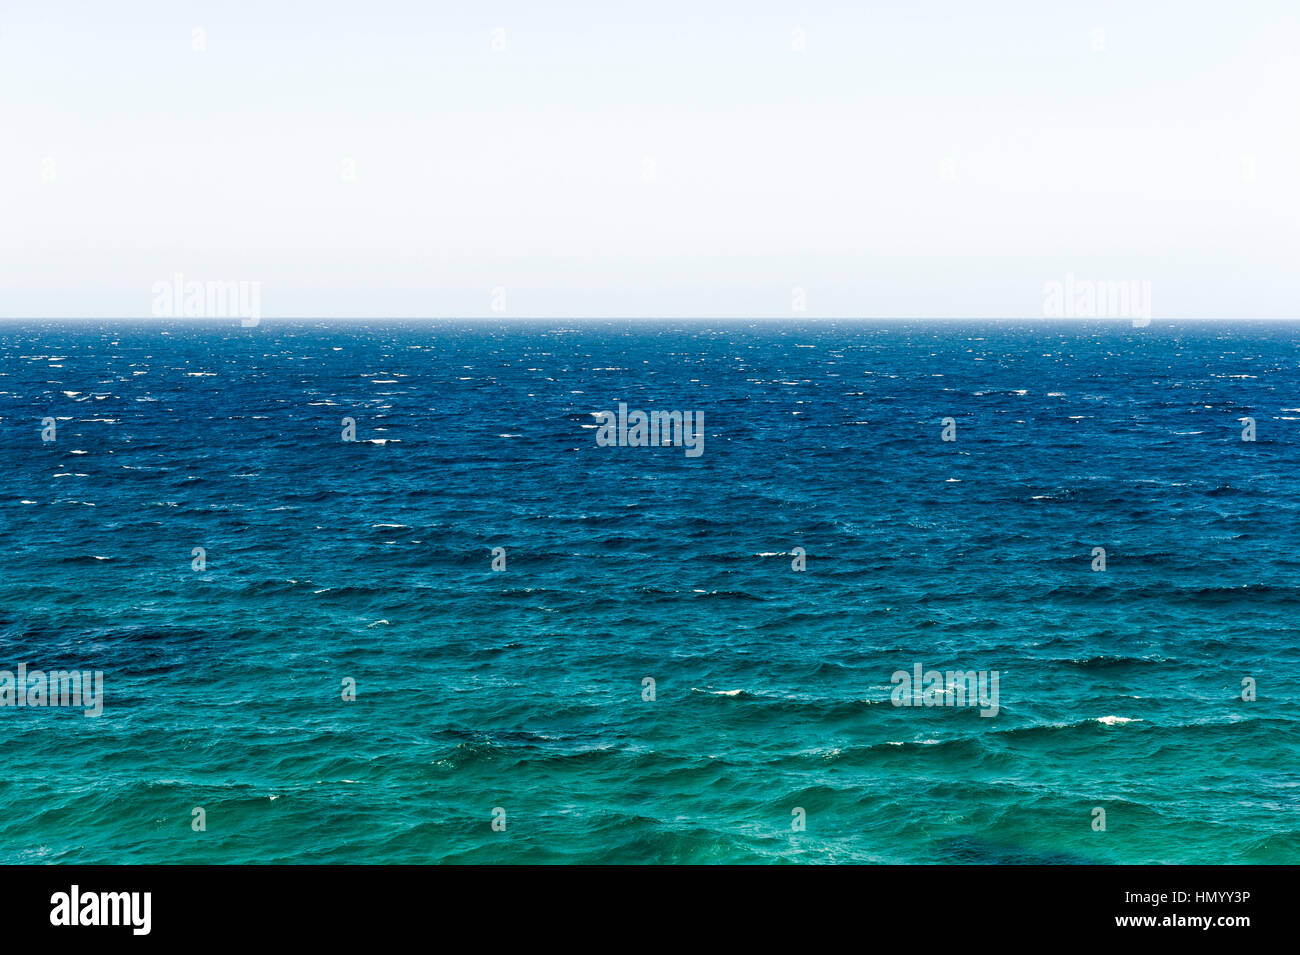 The wind-blown surface and horizon of a turquoise ocean. - Stock Image